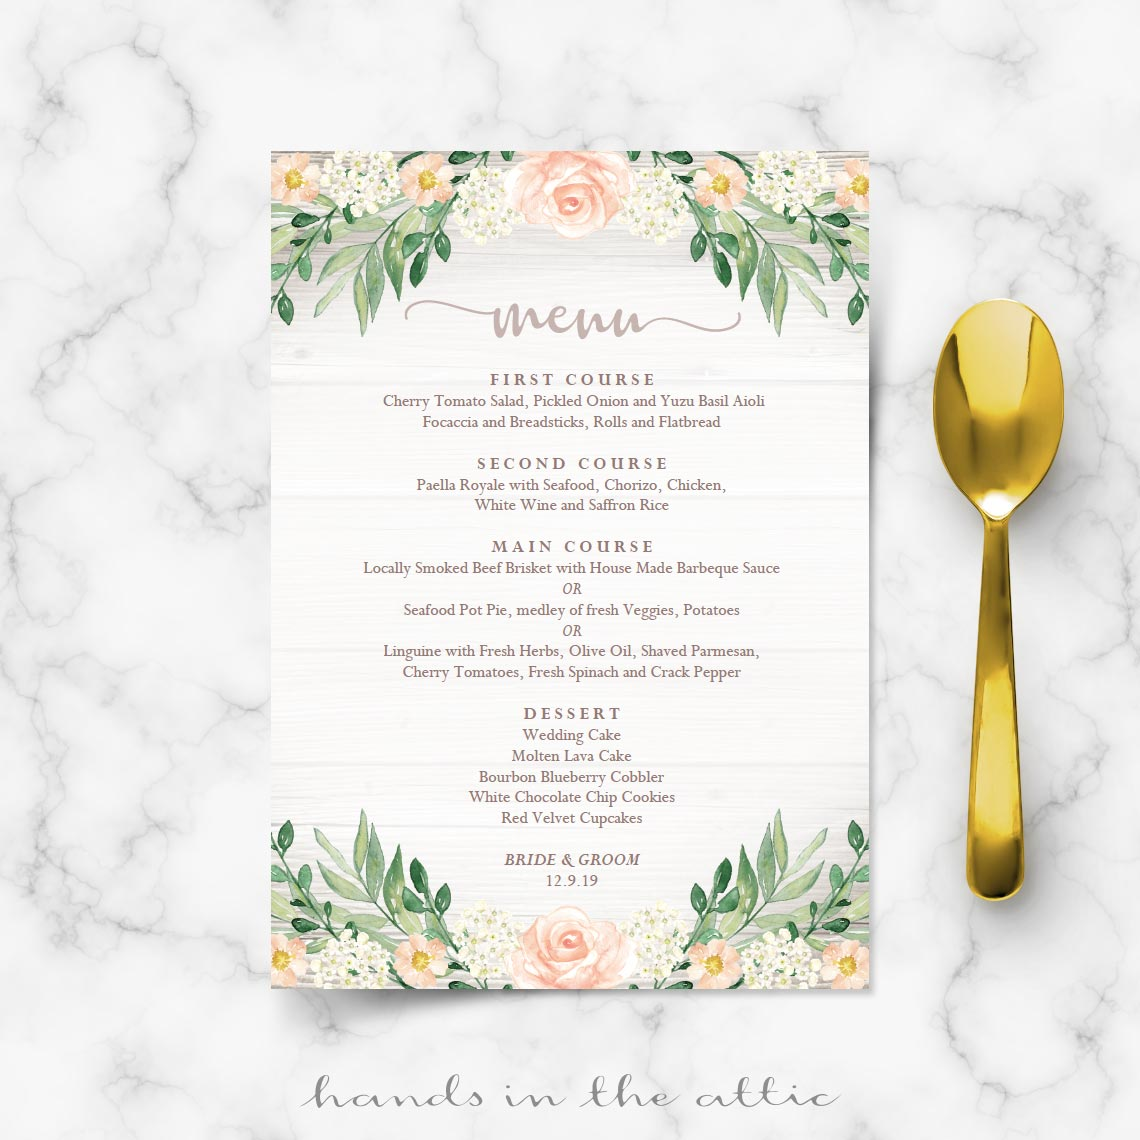 Floral Wedding Reception Menu Template | Wedding Menu Cards | Hands ...